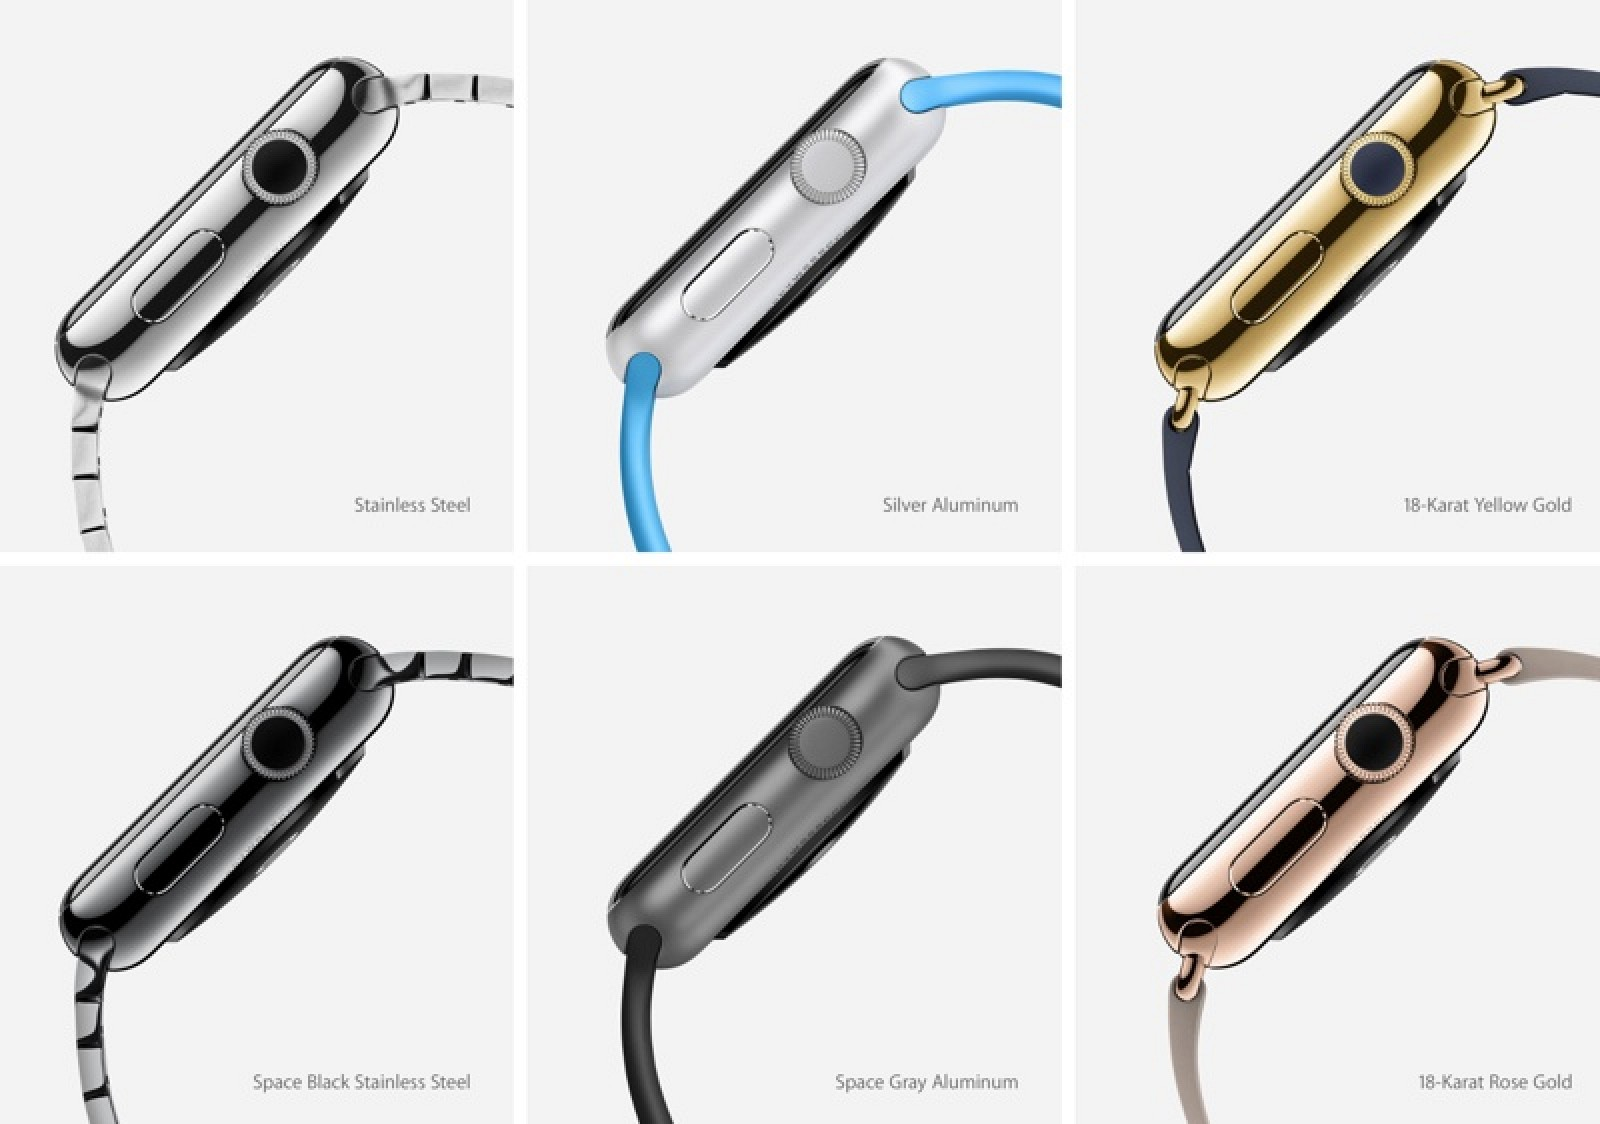 Apple Watch cases are available with different material